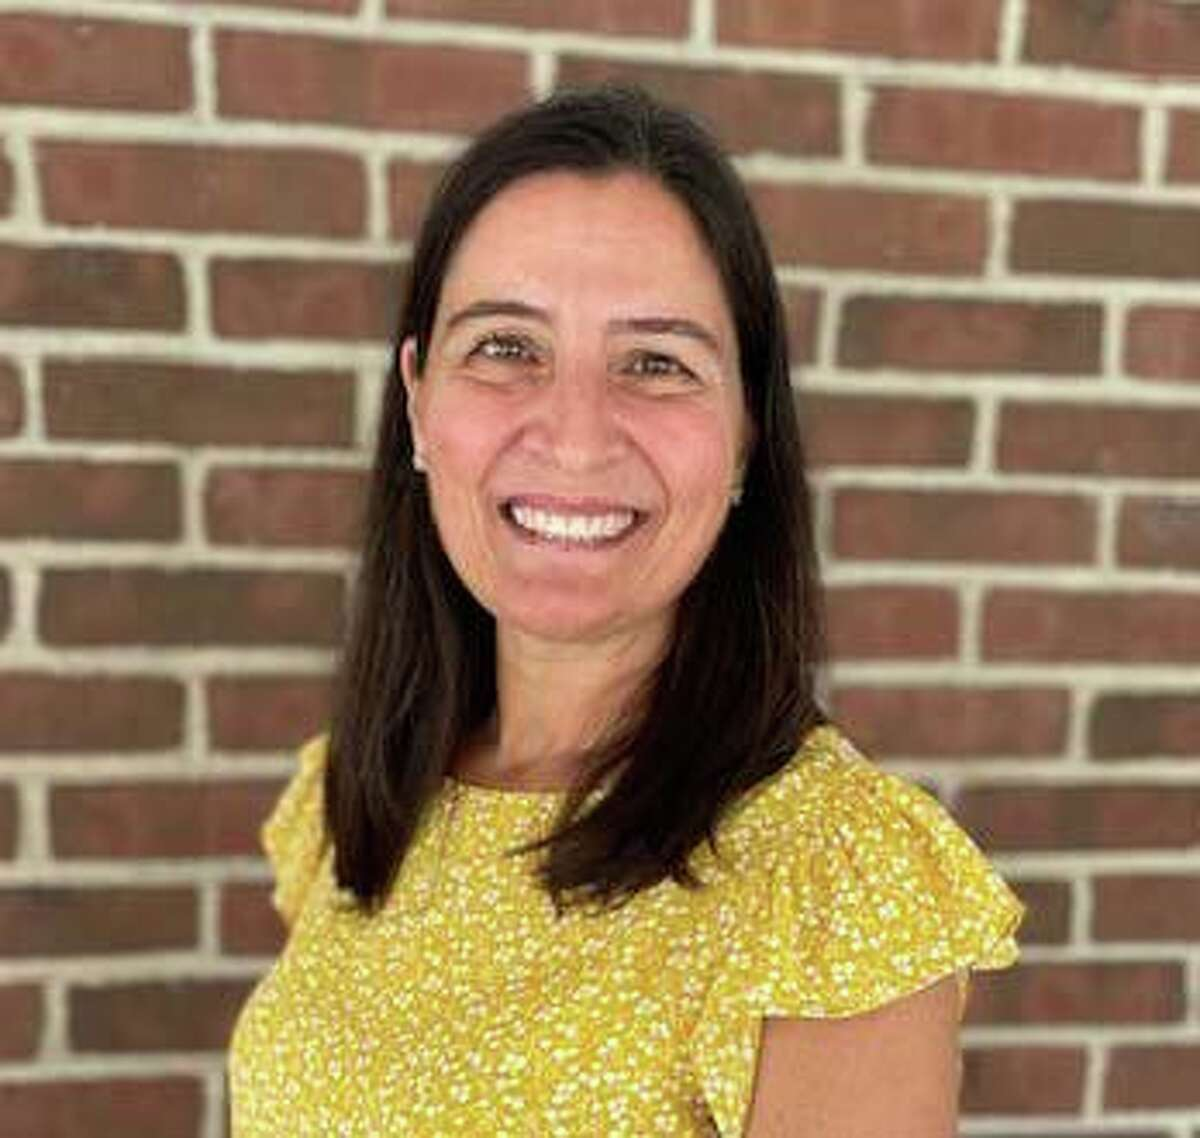 Natalie Hammond was appointed the new principal at A.W. Cox Elementary School in Guilford during Monday night's Board of Education meeting.